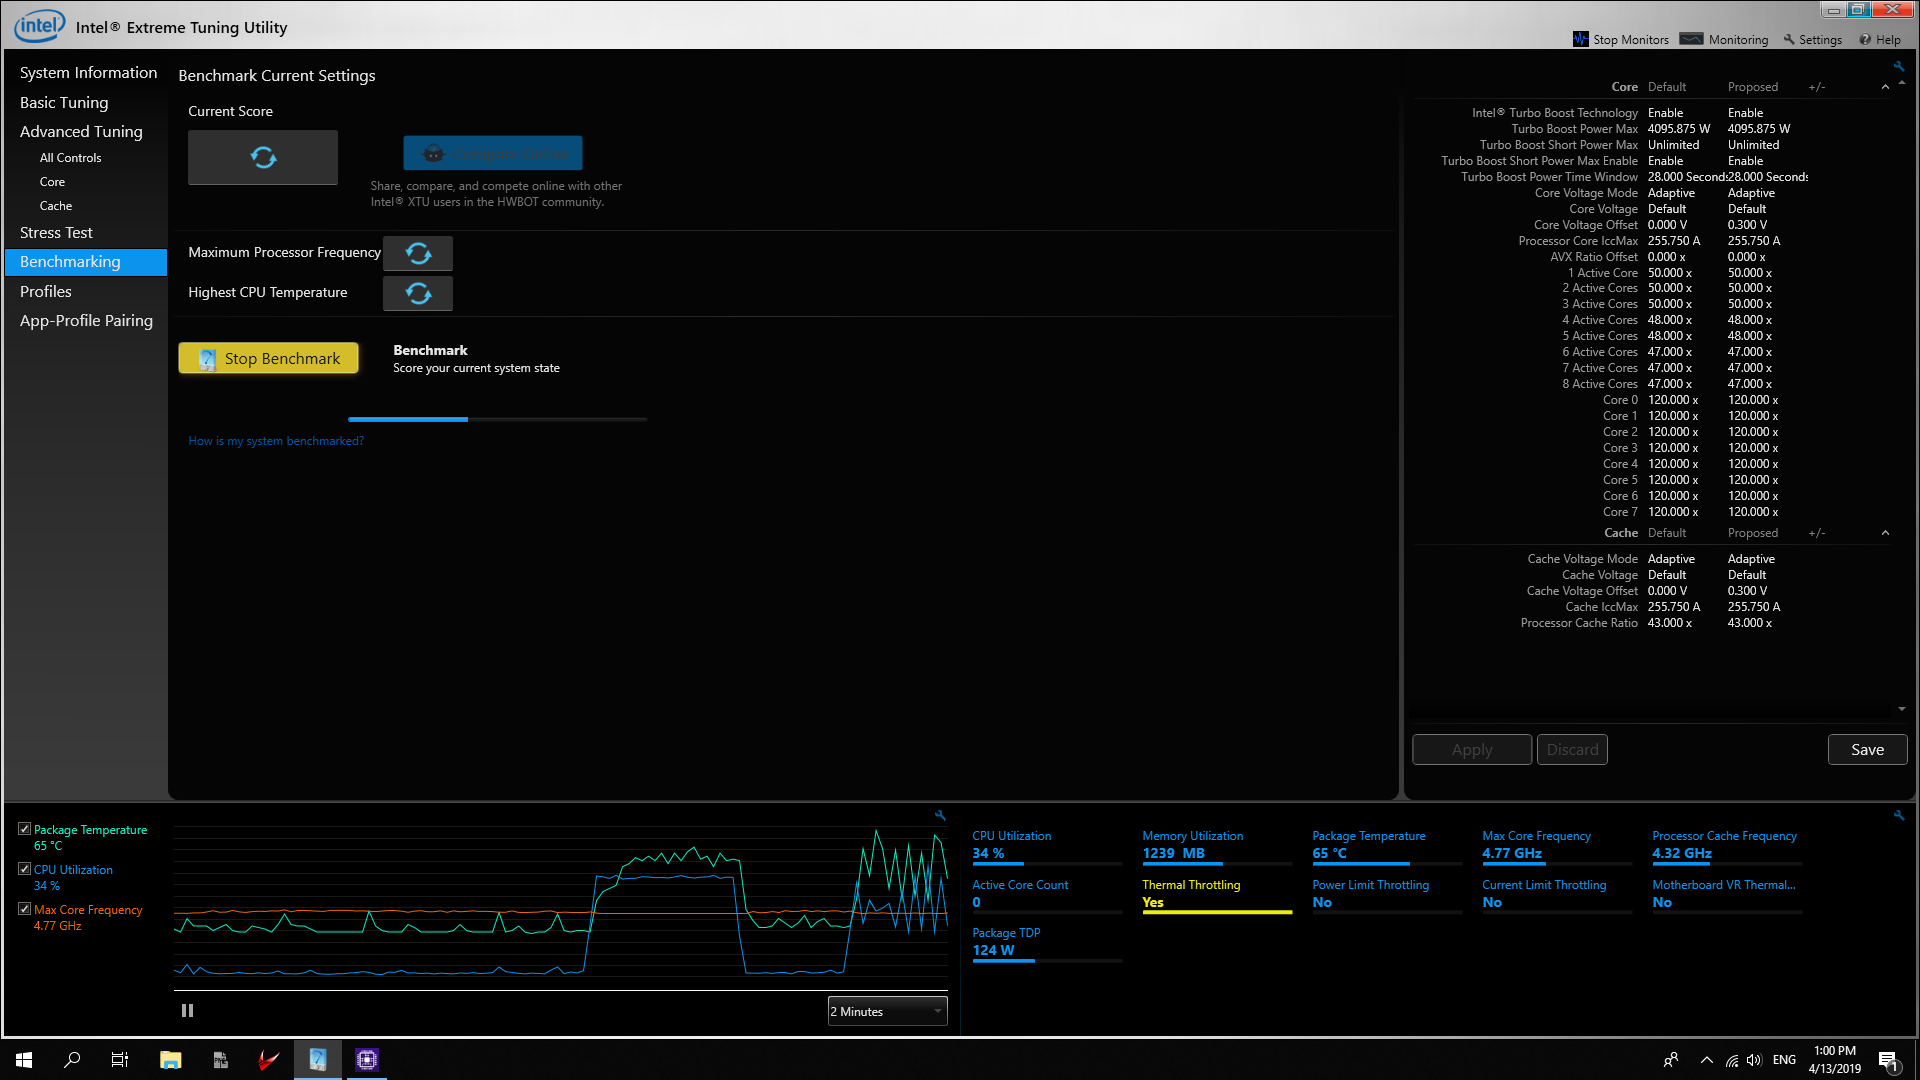 overclock-extreme-tuning-screen-1-rwd.png.rendition.intel.web.1920.1080.png